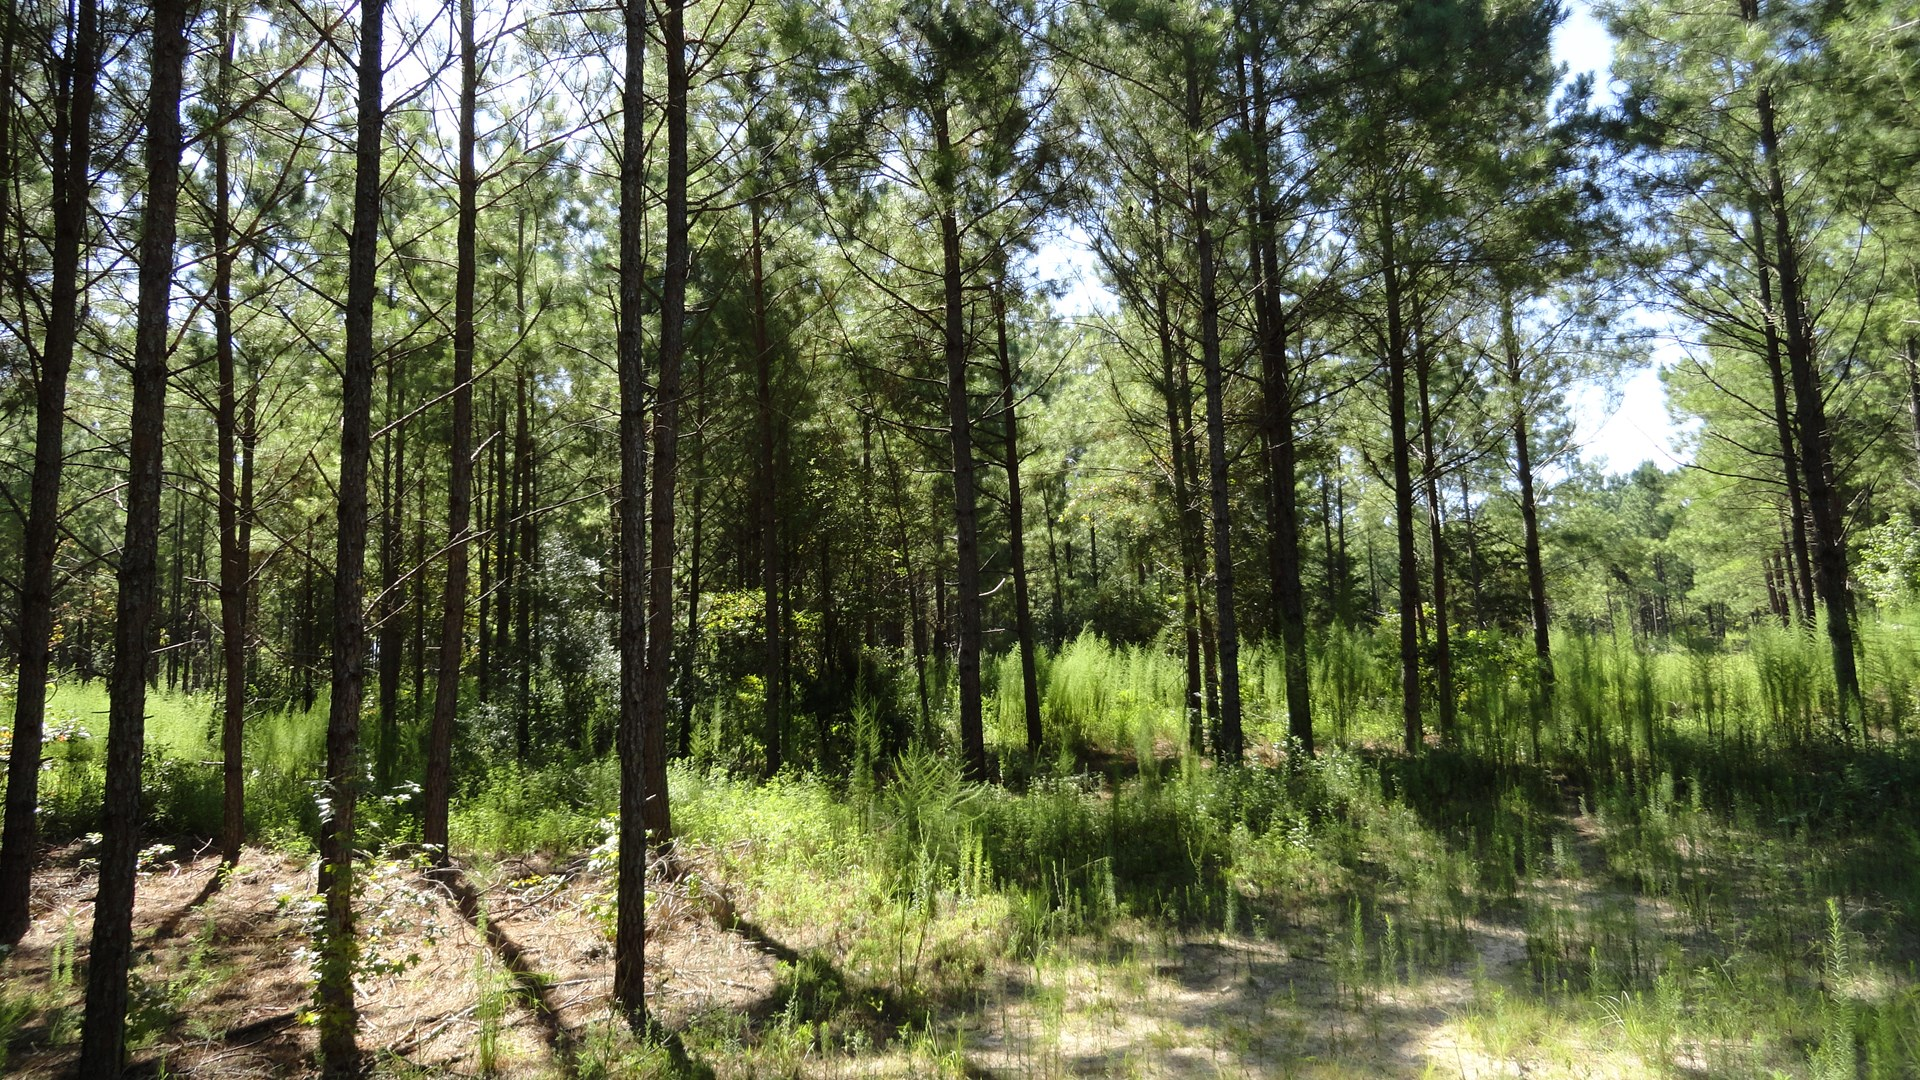 East Texas Land For Sale, Timber, Hunting, Recreational